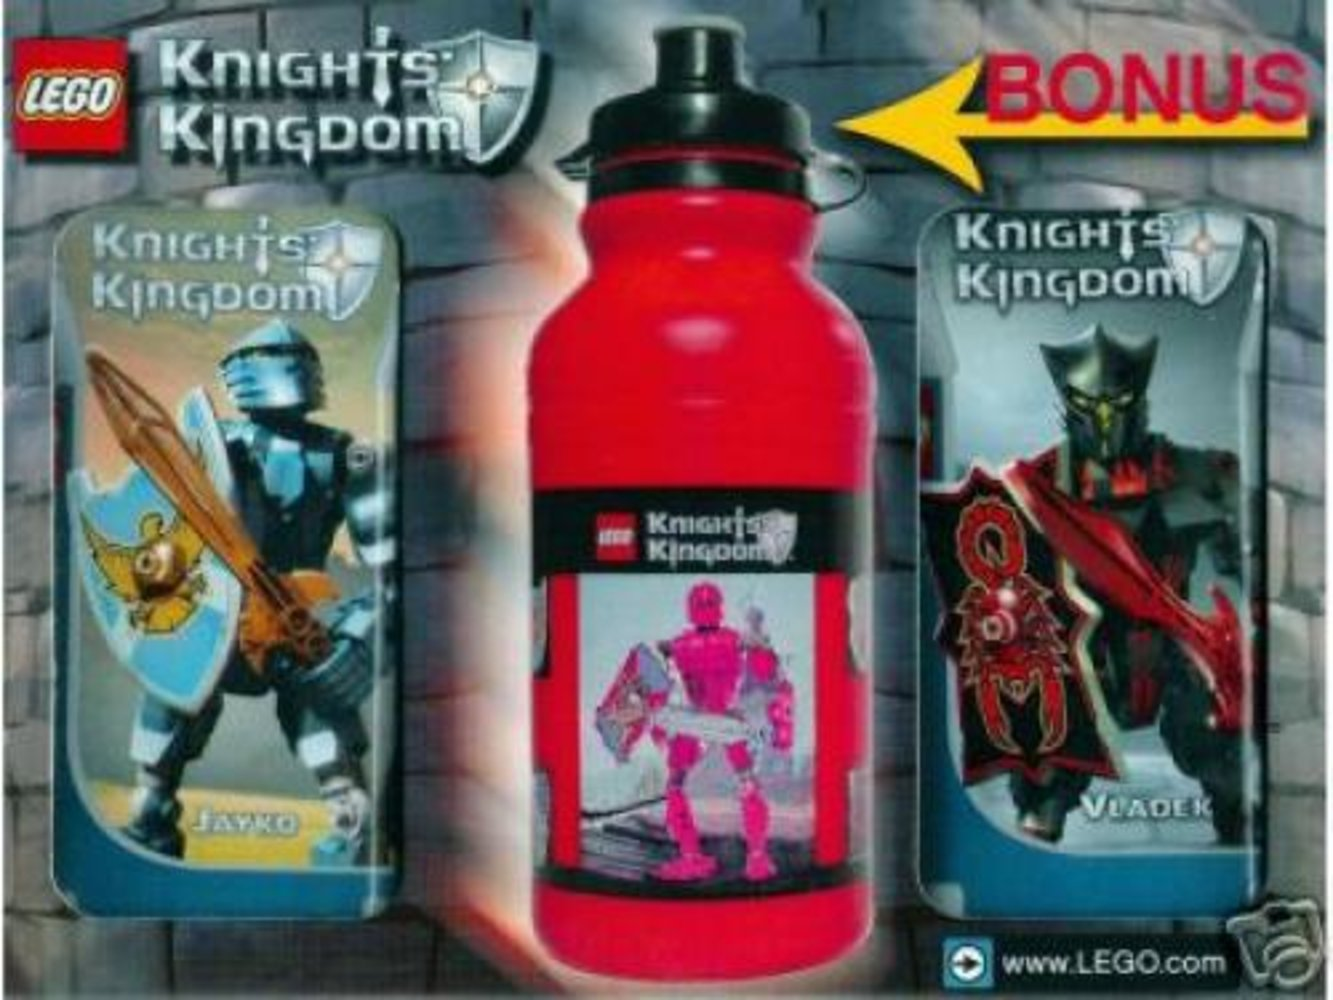 Knights' Kingdom Value Pack 2 (with bonus water bottle)